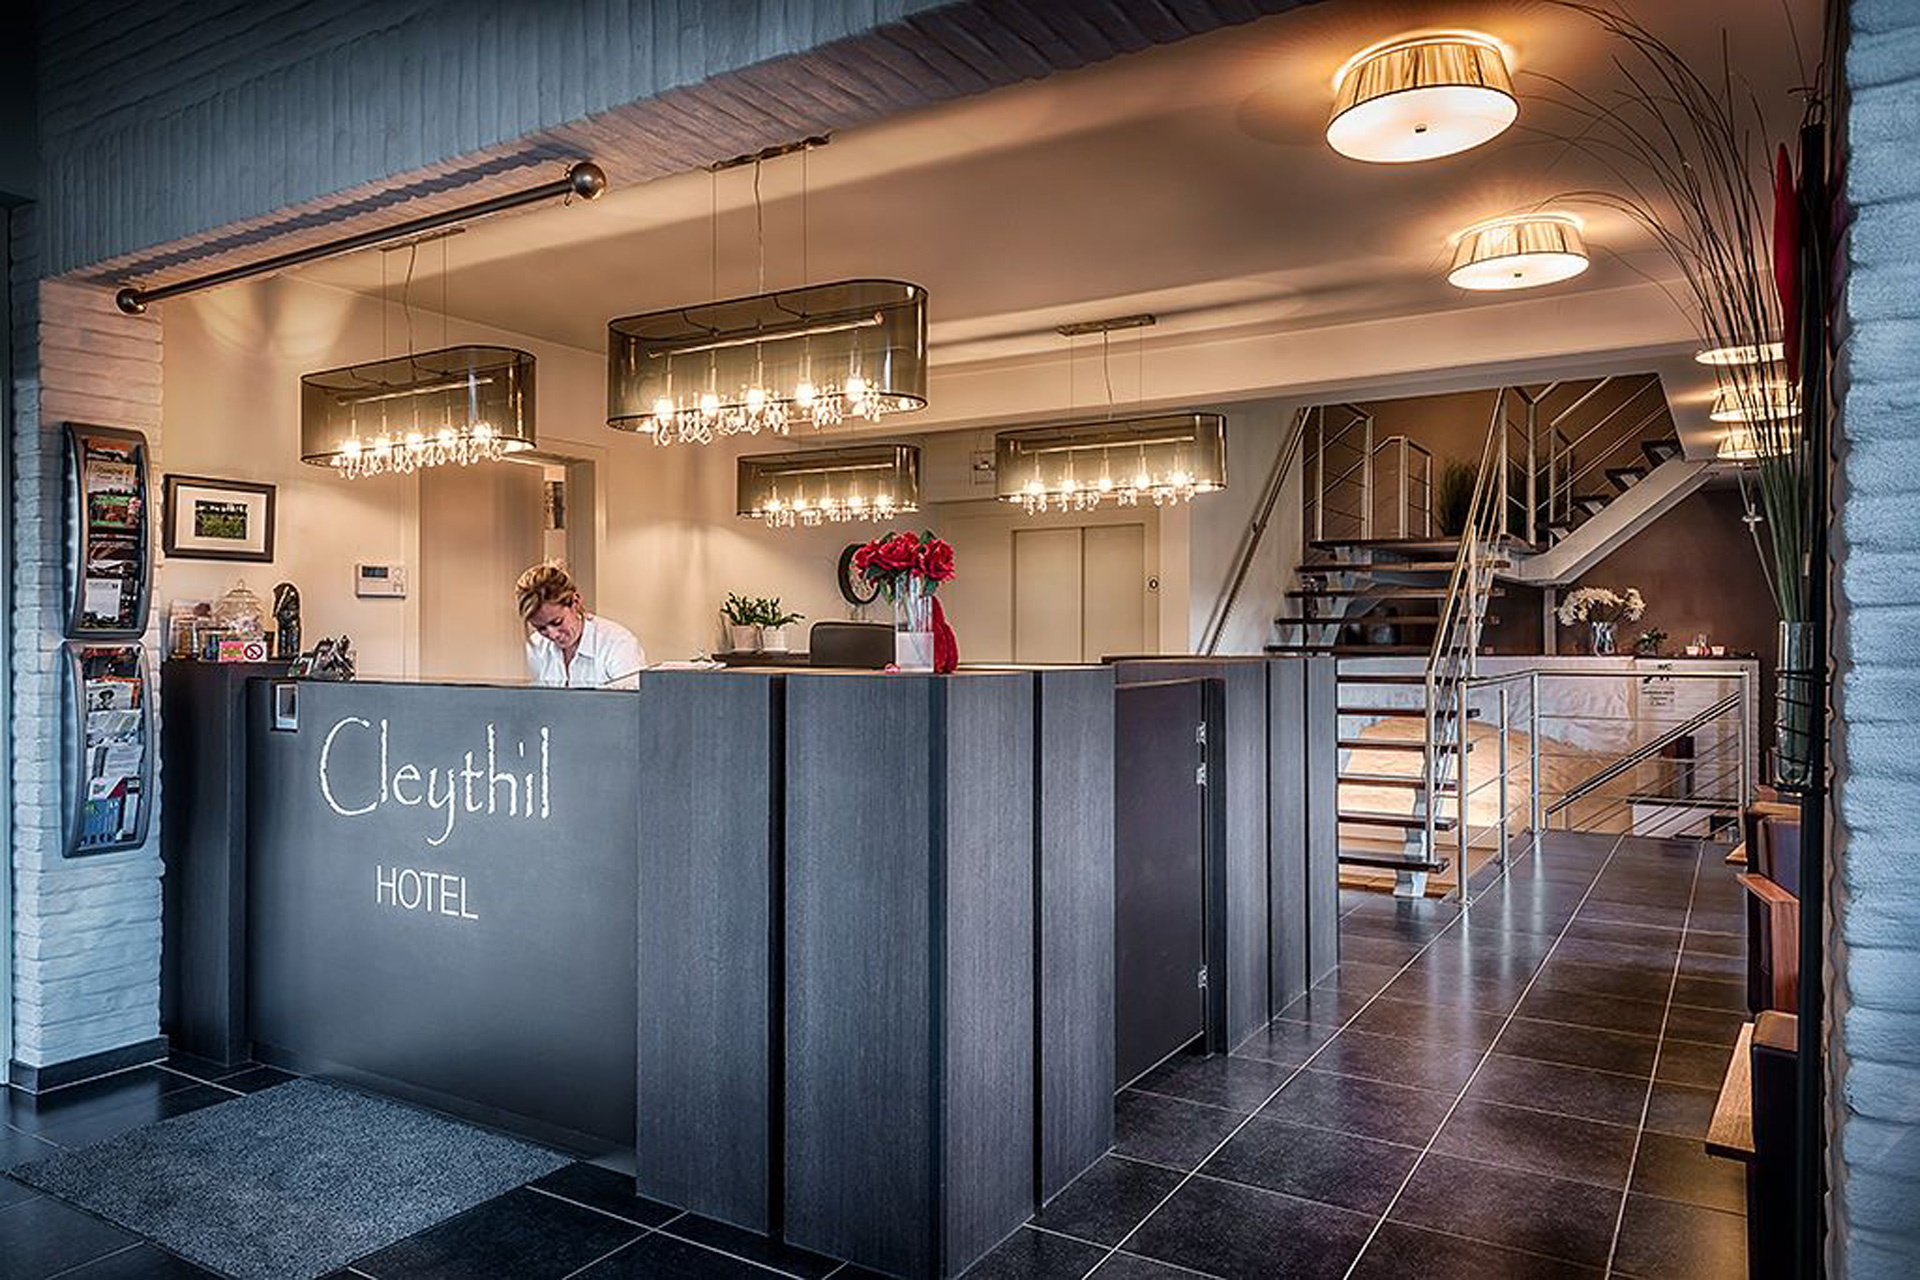 Cleythil Hotel - Cleythil Hotel